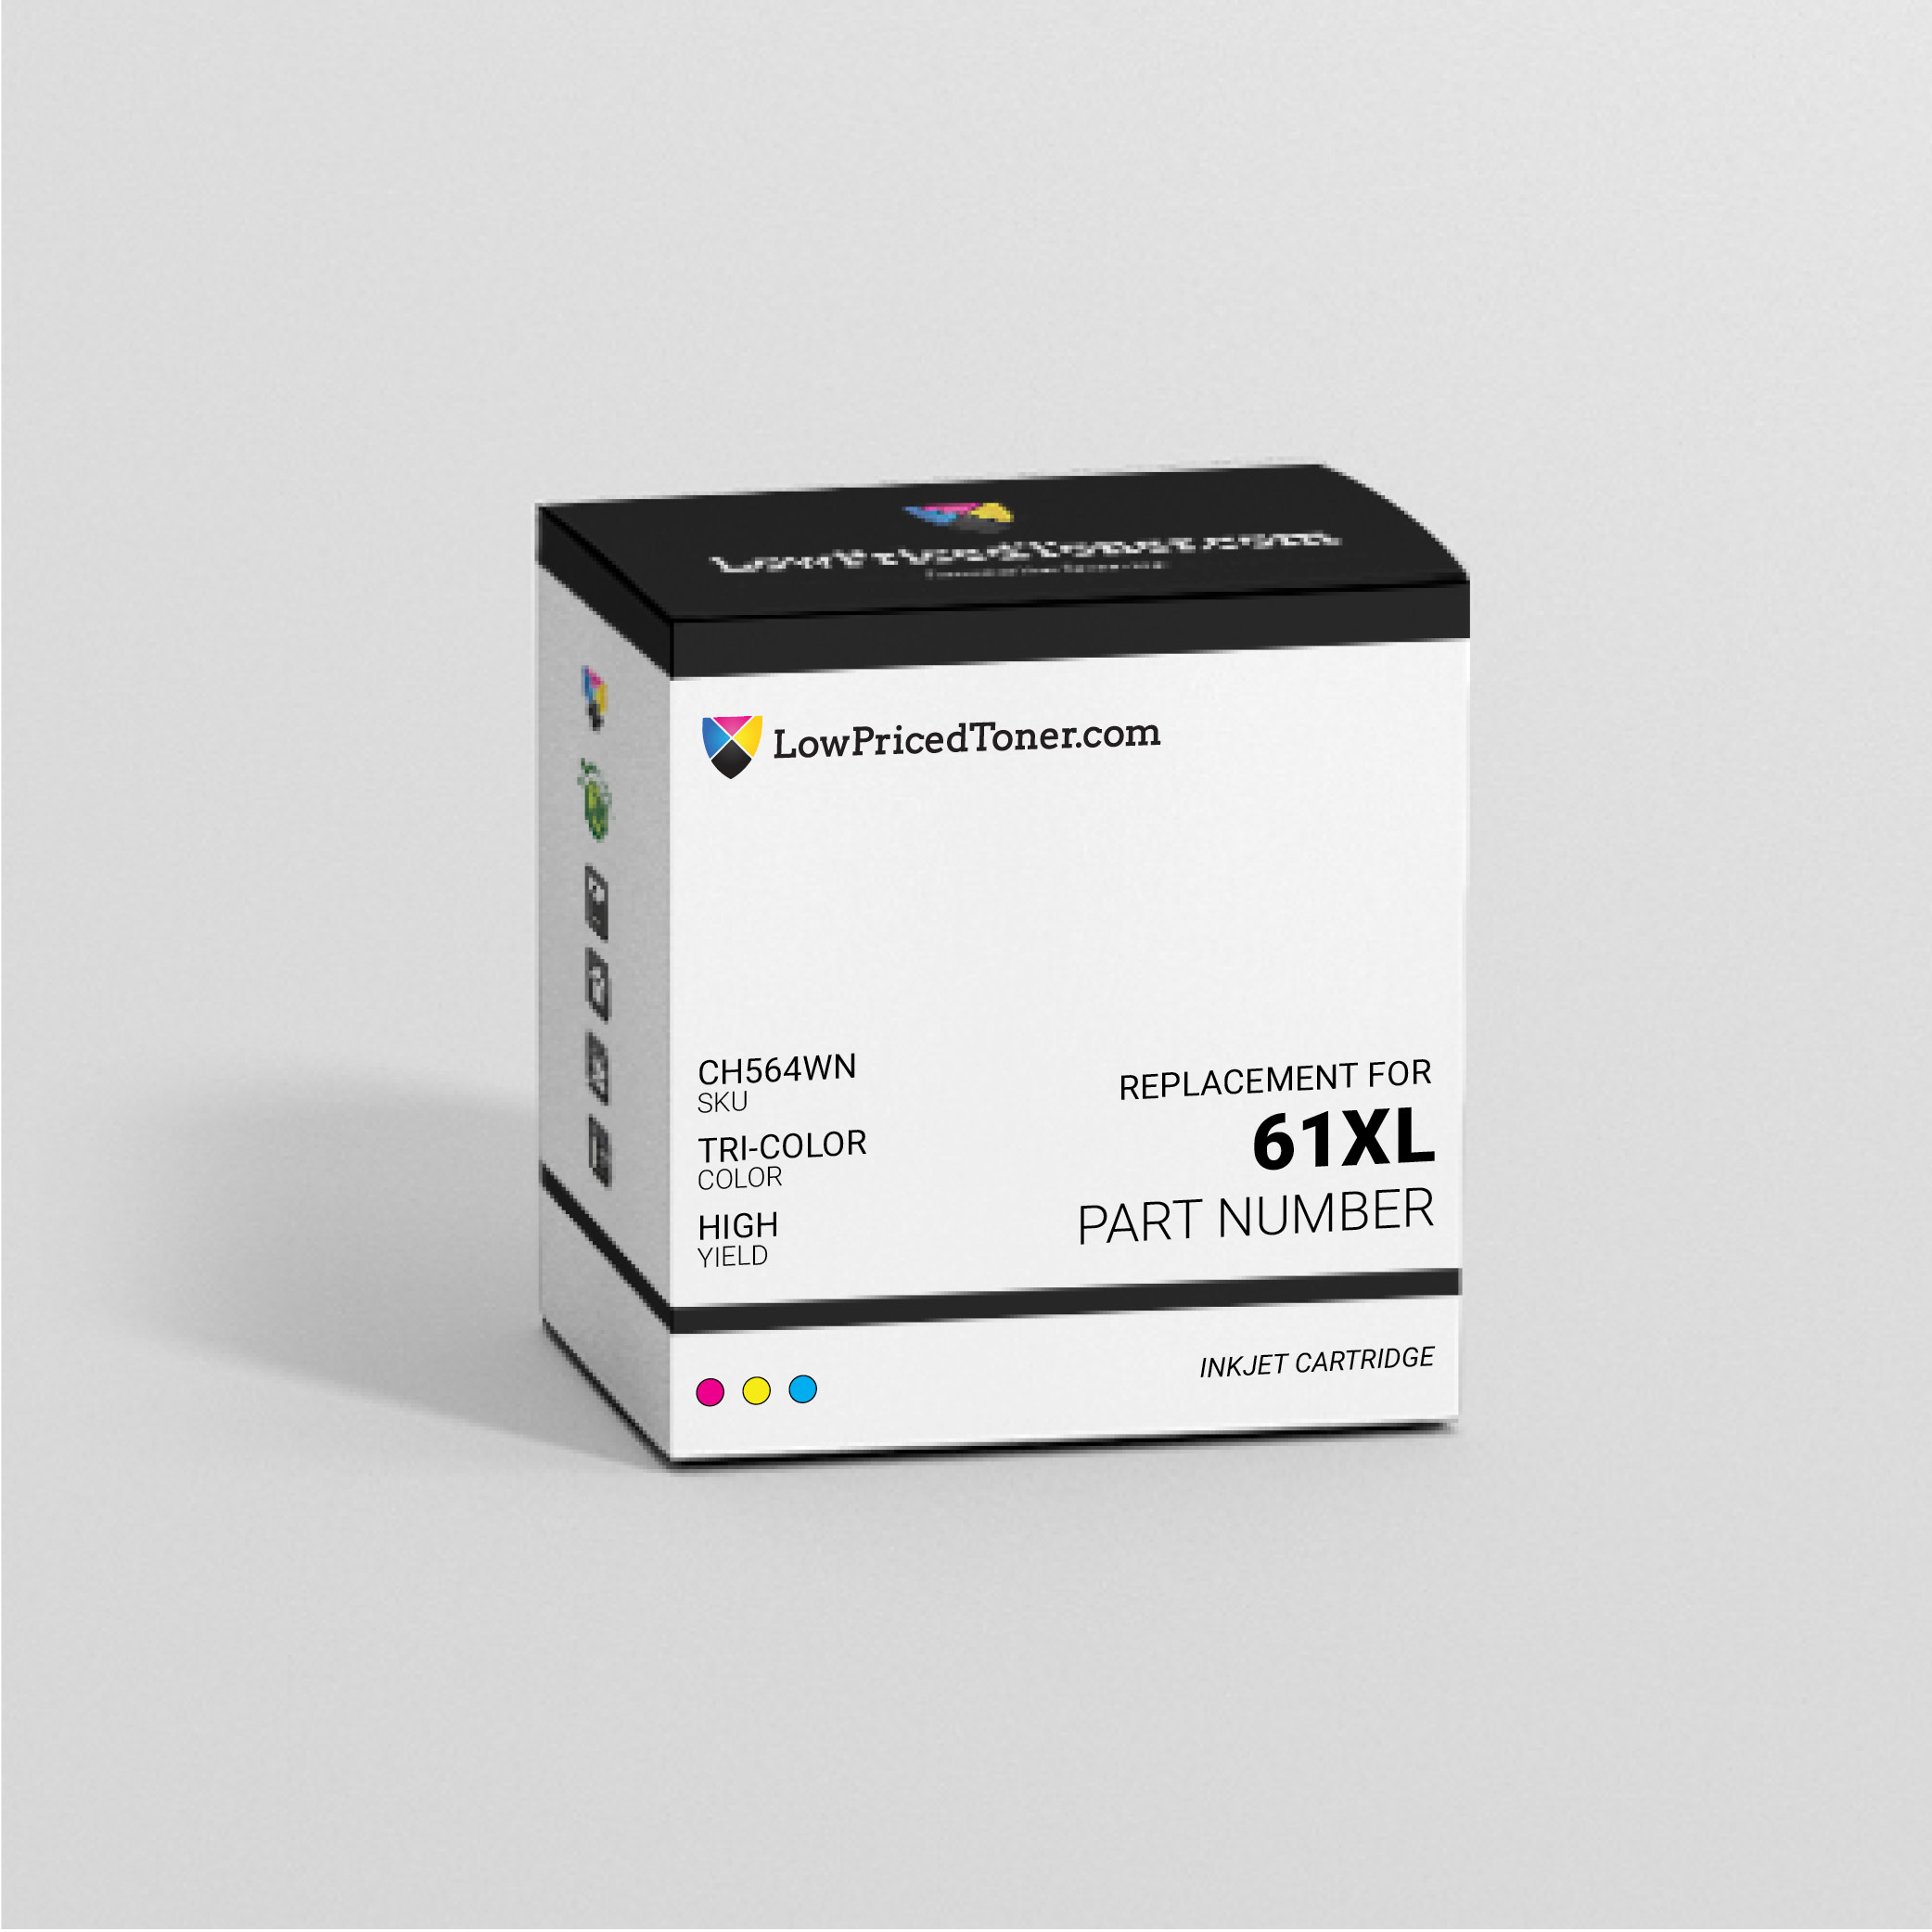 HP CH564WN 61XL Remanufactured TriColor Ink Cartridge High Yield